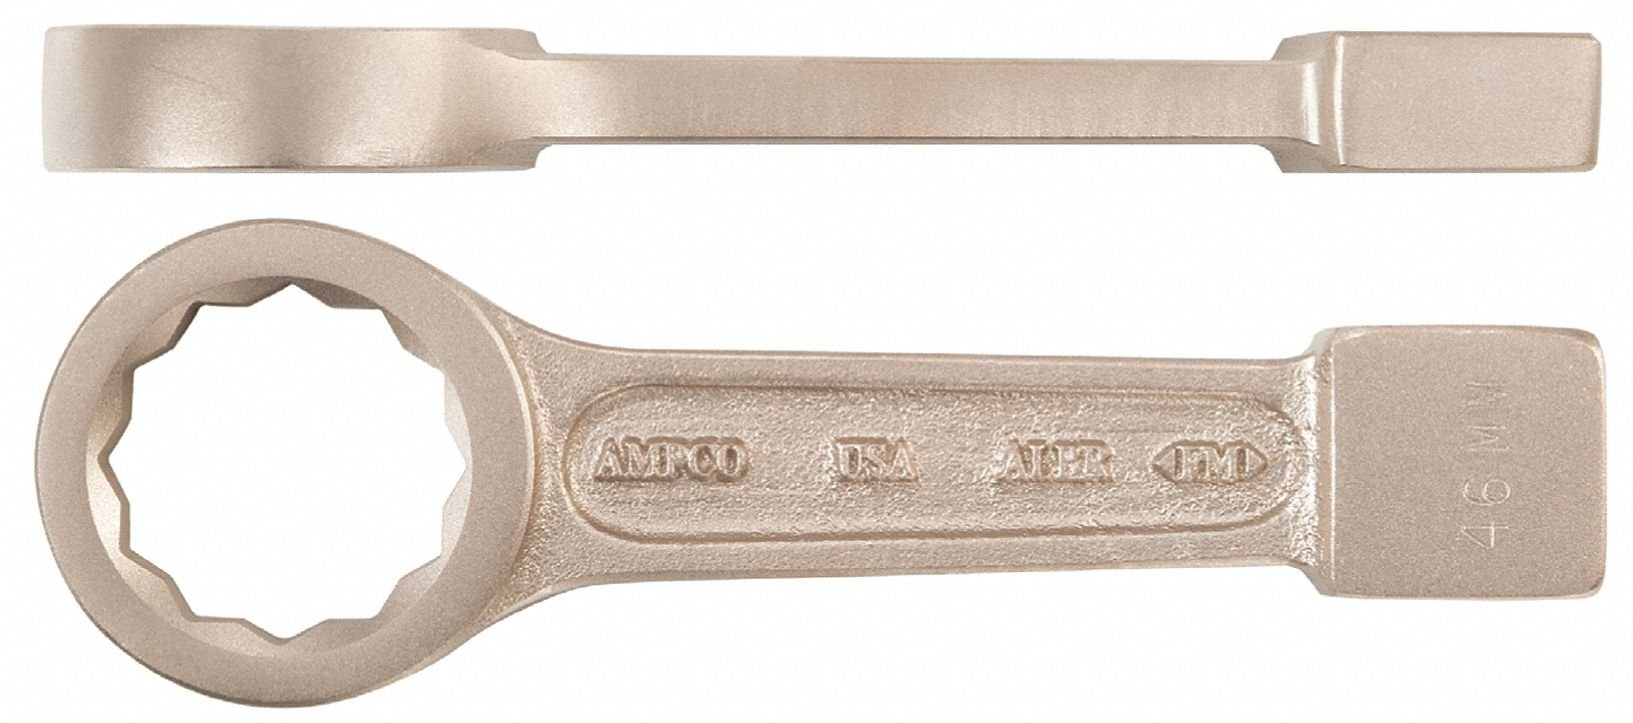 Striking Wrench, Metric, Number of Points: 12